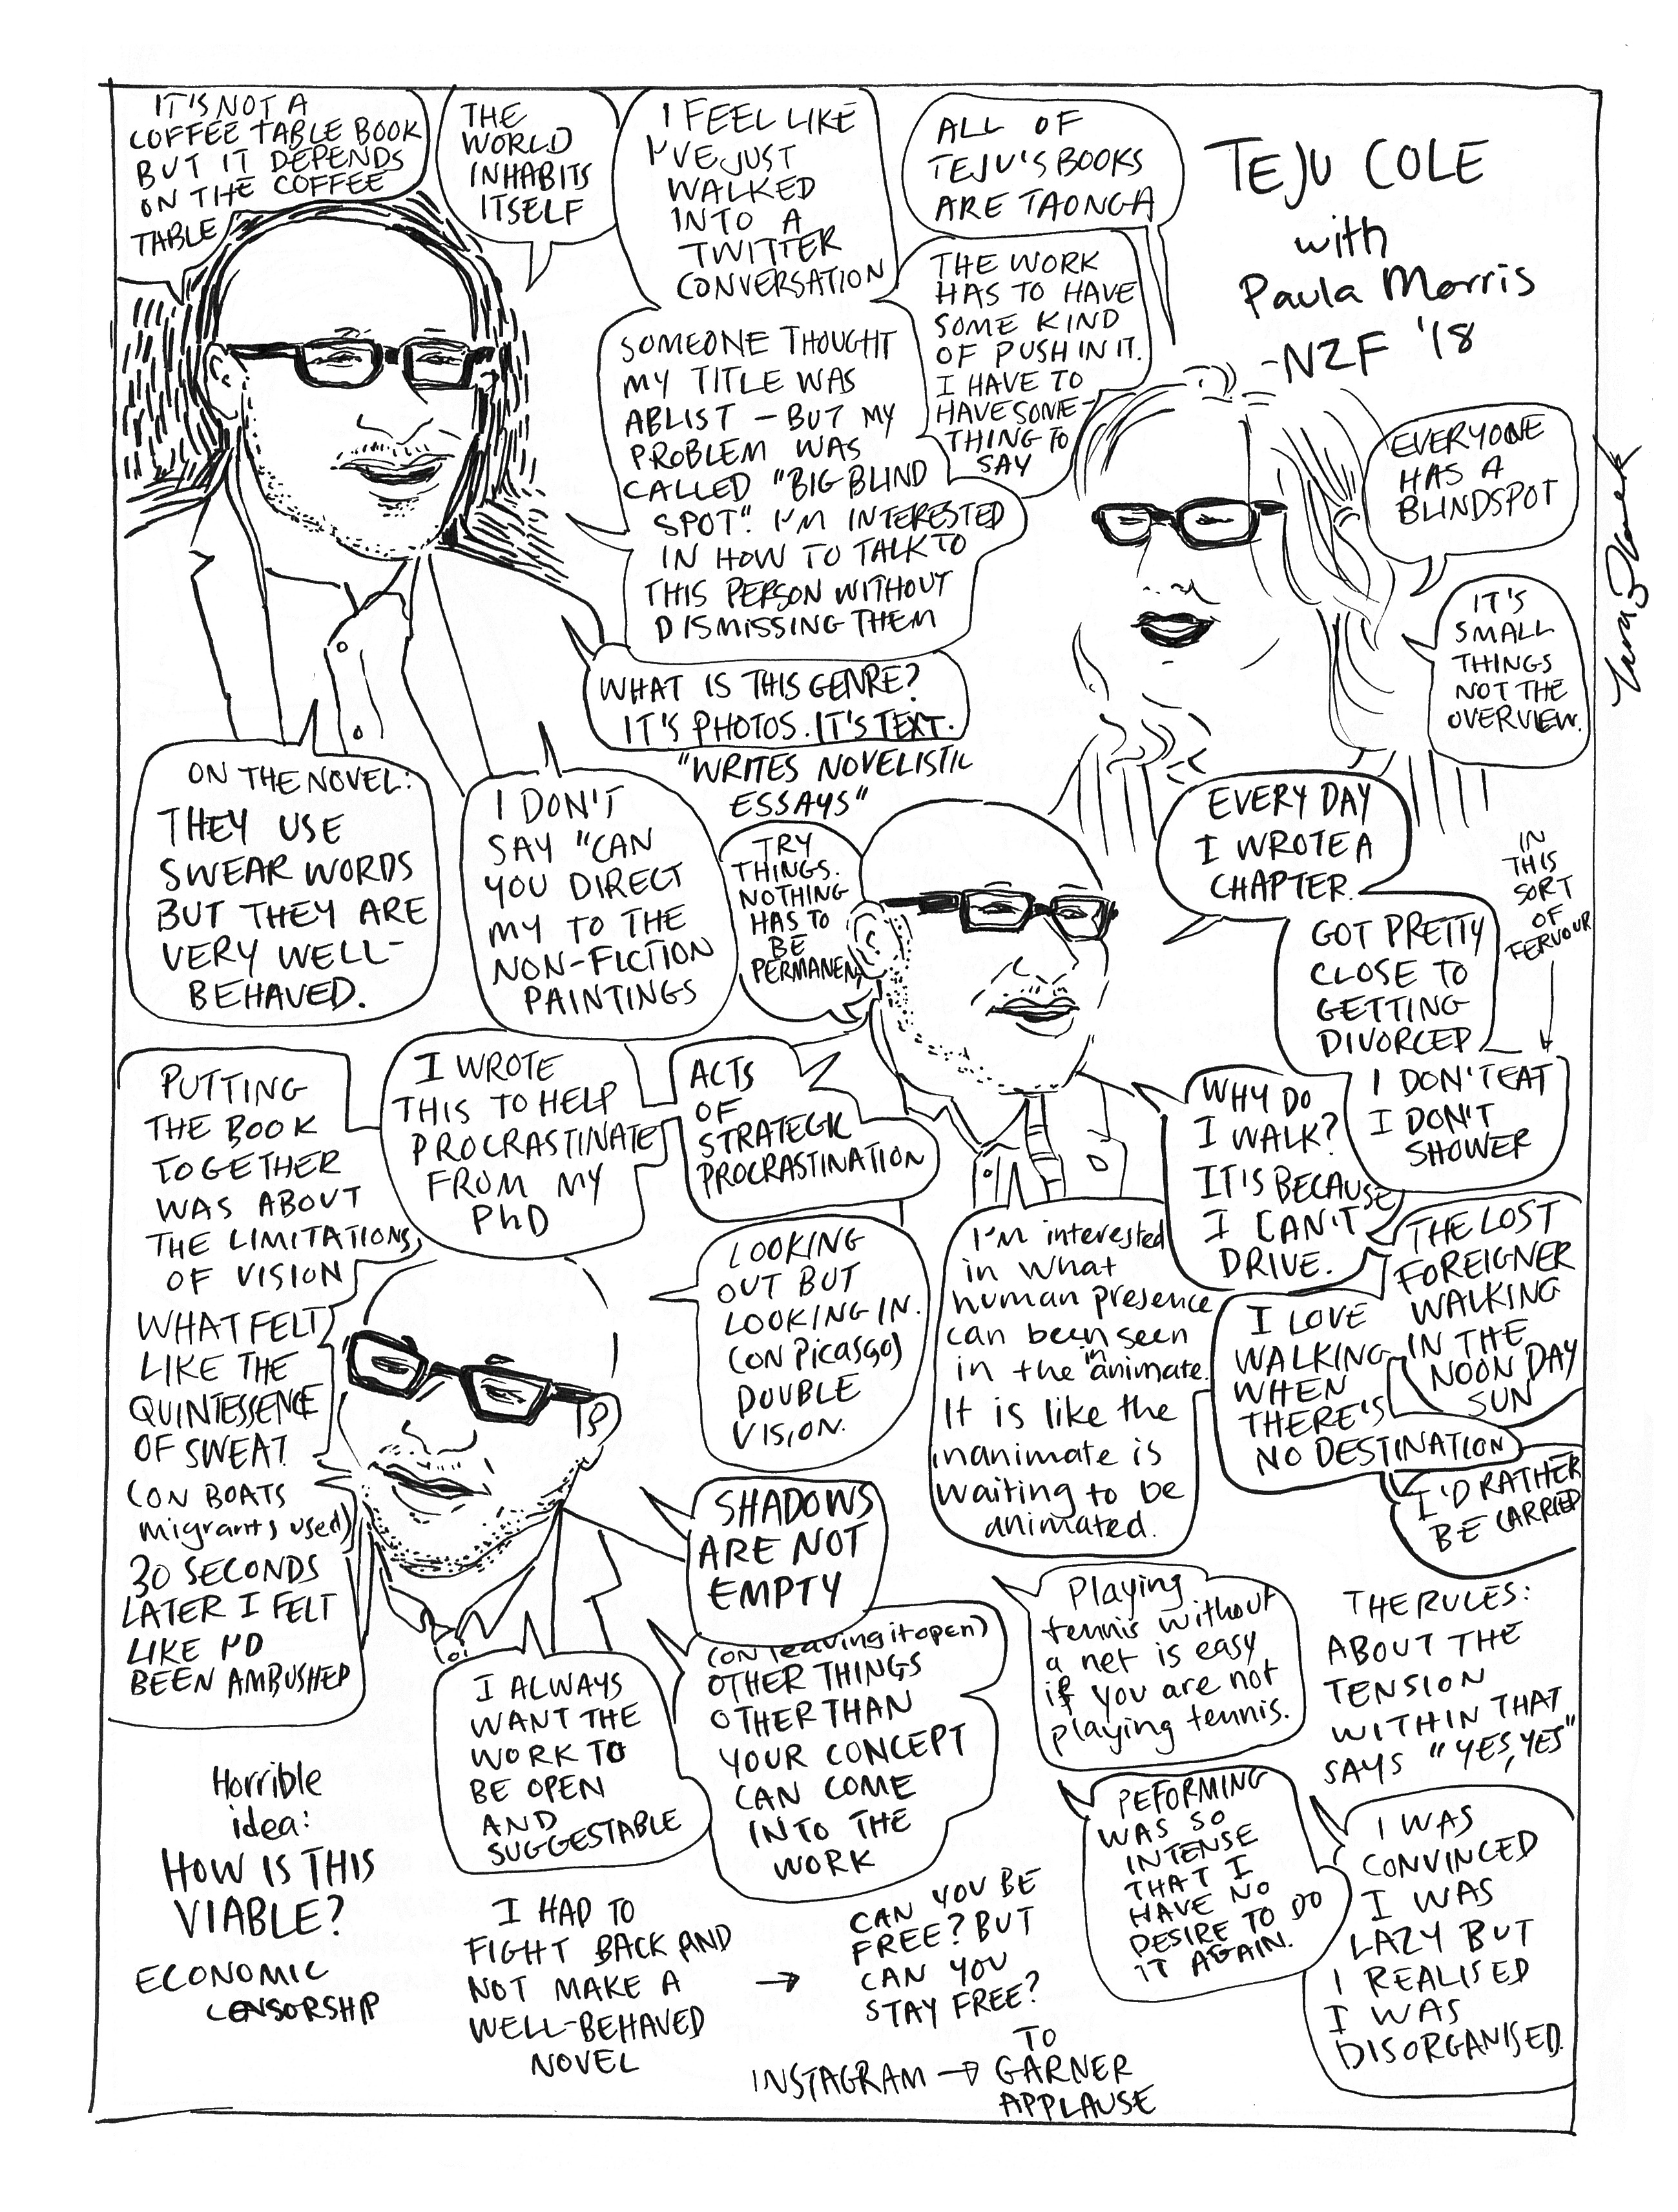 Drawing/comic of Teju Cole in conversation with Paula Morris at NZWF 2018.